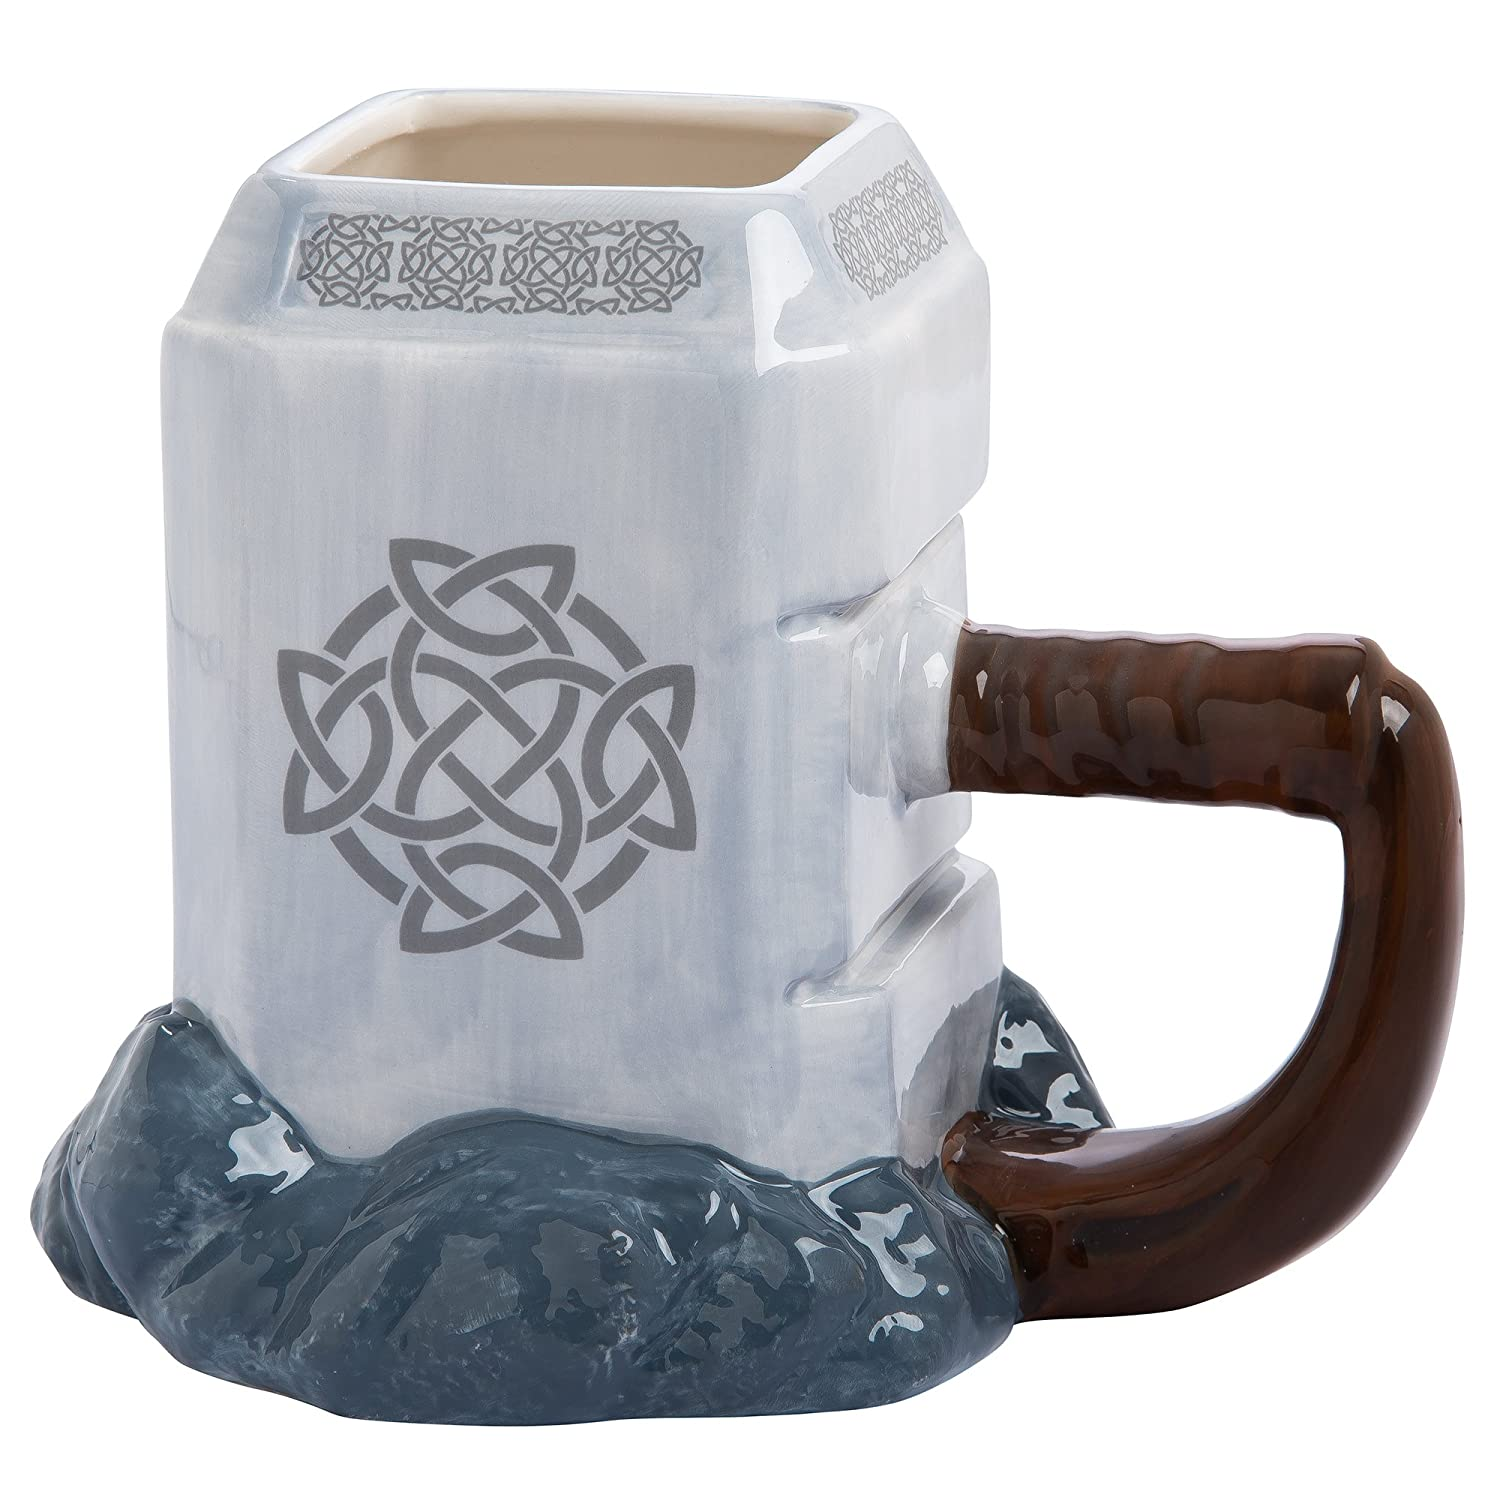 Thor Mjolnir Mug, Avengers, Infinity War, Marvel Universe, MCU, Marvel Cinematic Universe, Iron Man, Thor, Thanos, cosplay, cosplay gear, action figures, Marvel items, Incredible Hulk, Spider Man, Captain America, Black Widow, Doctor Strange